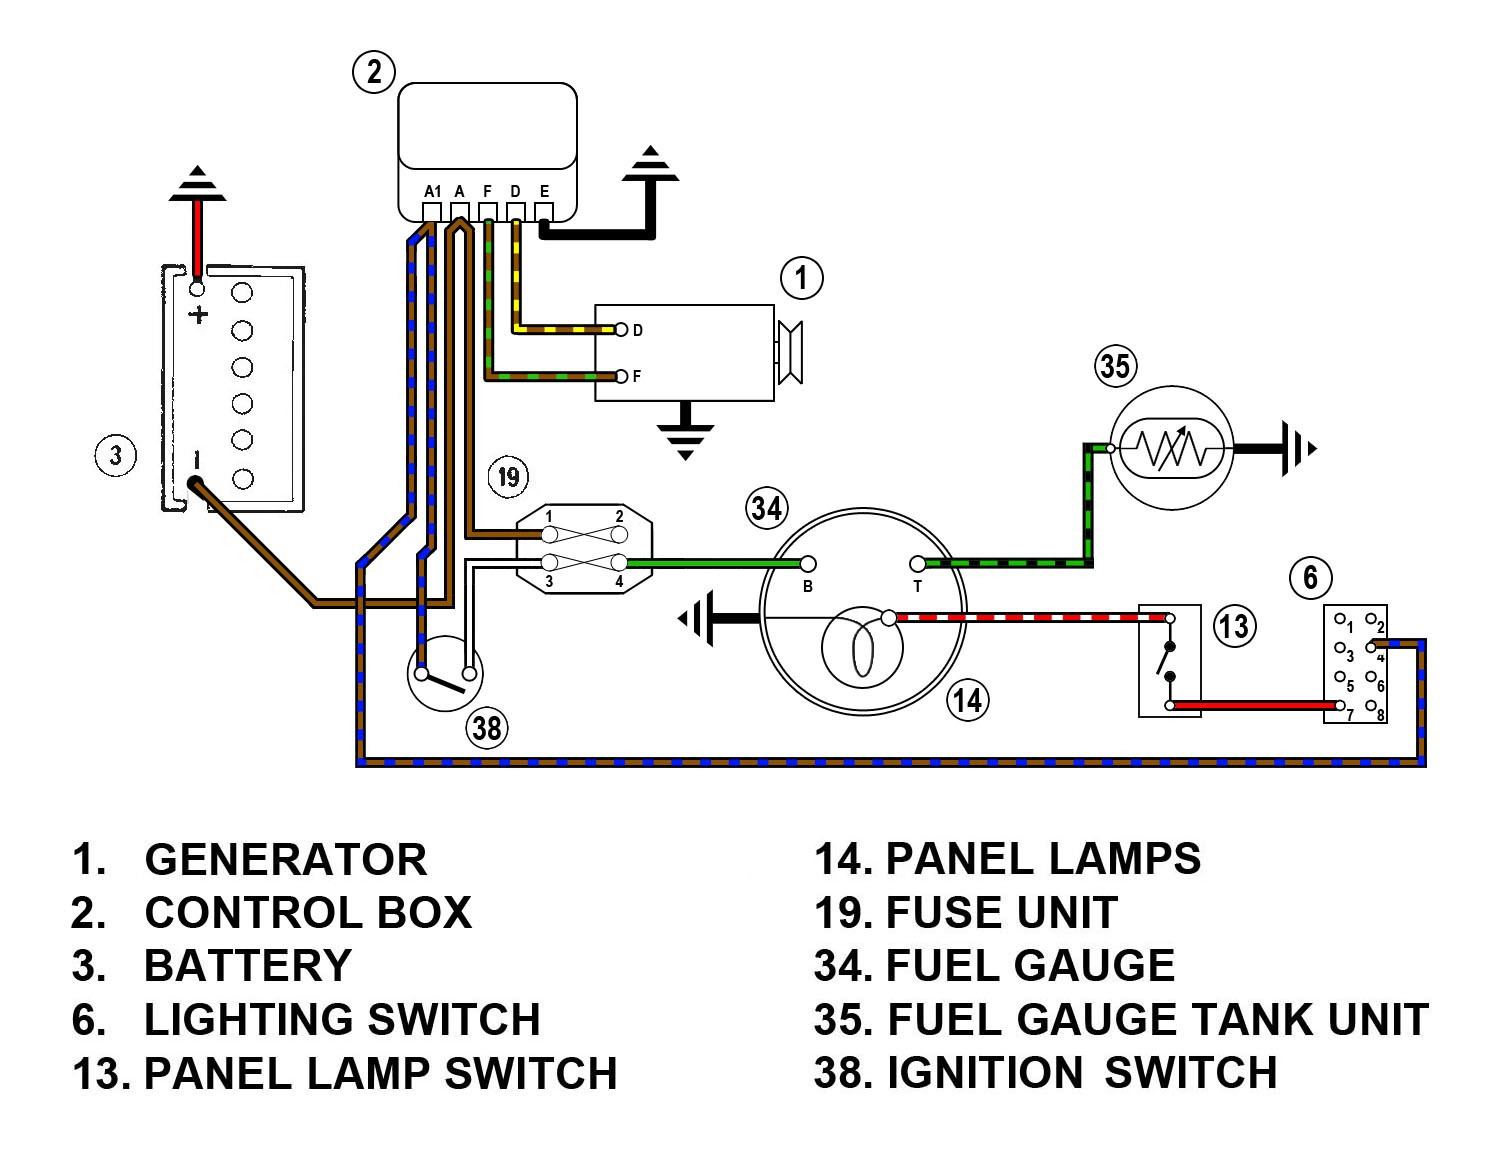 auto meter wiring diagram wrg 4671  meter panel wiring diagram autometer amp gauge wiring diagram wrg 4671  meter panel wiring diagram